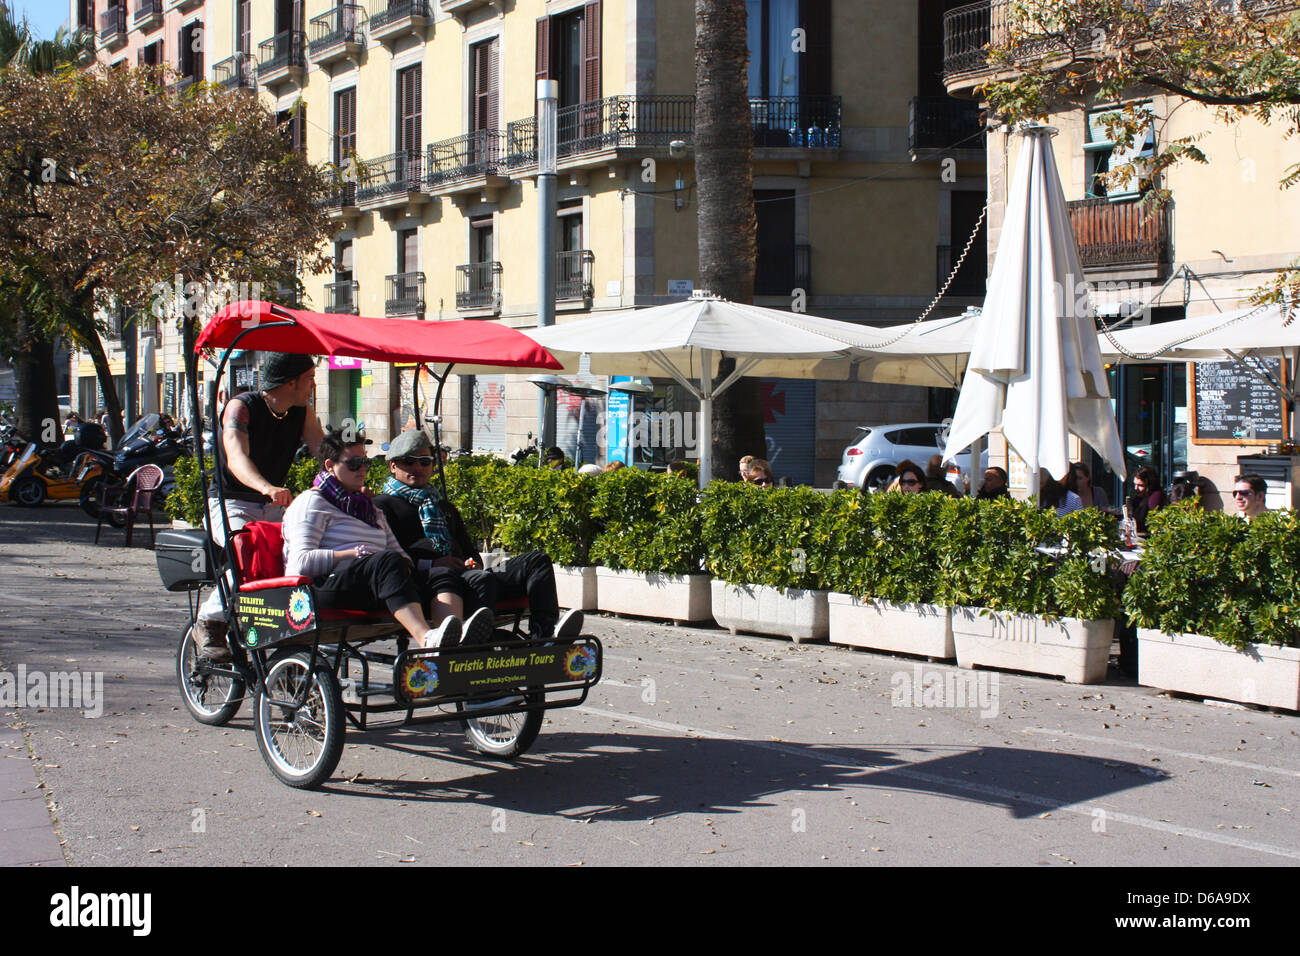 Tourists on tricycle in Barcelona, Spain Stock Photo